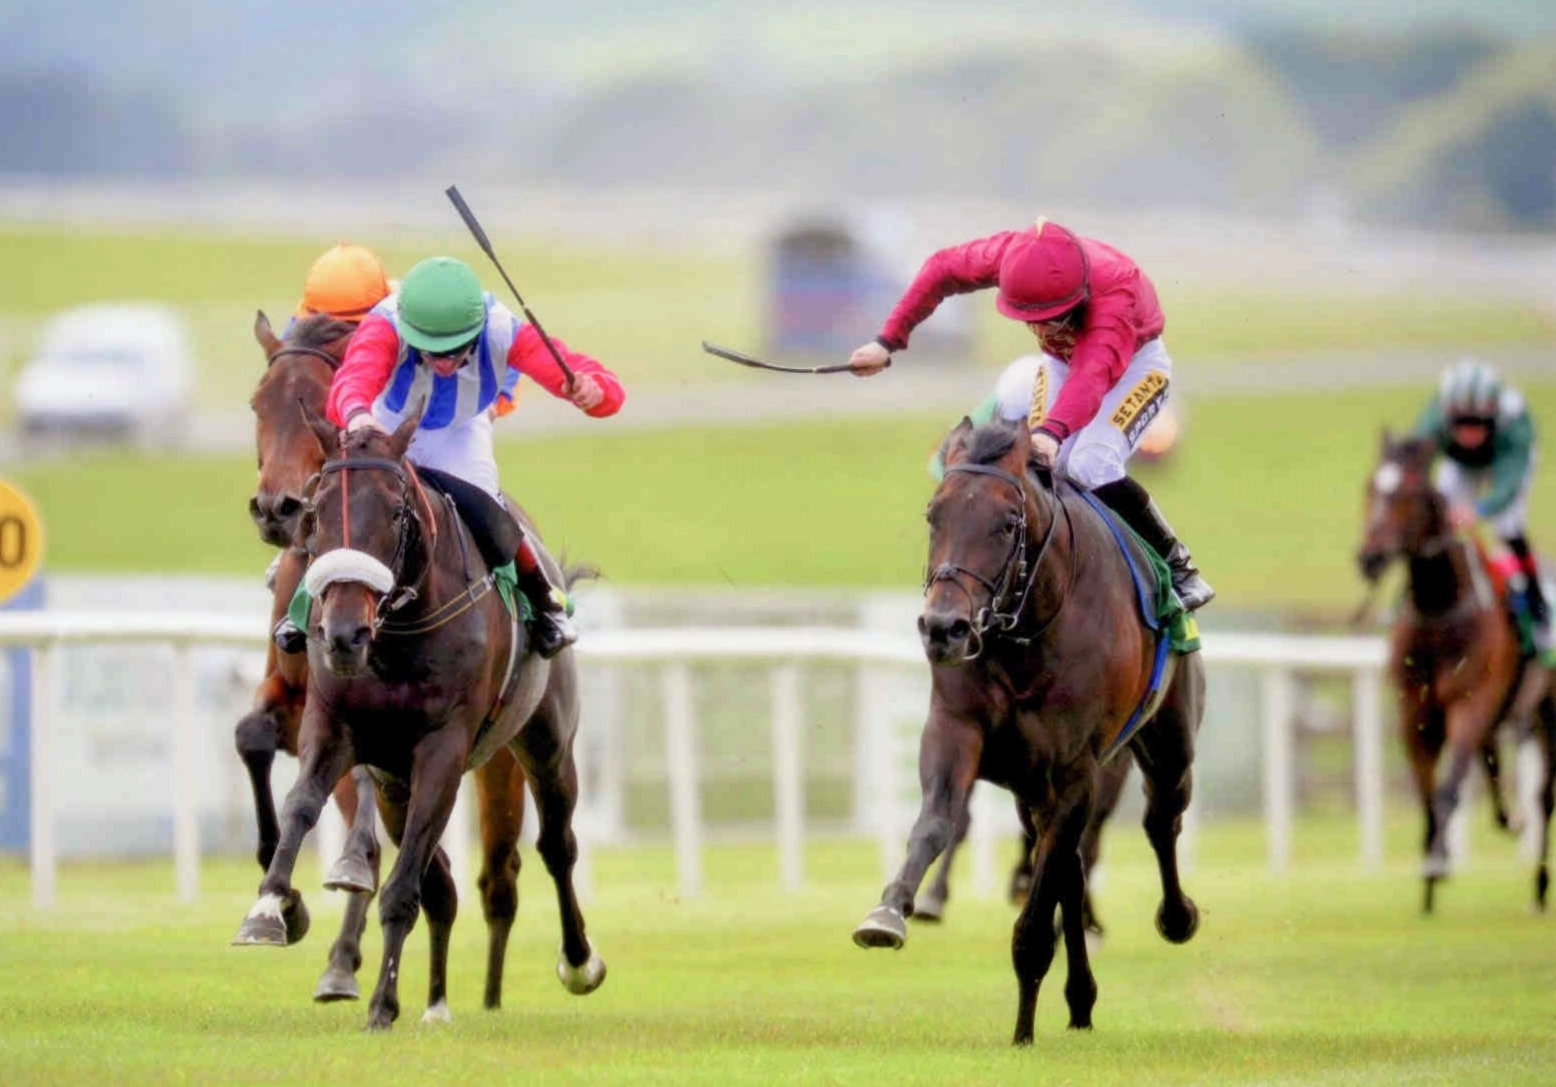 GAME SET DASH provides Qatar Racing Ltd, Ger and Colin with a double at the Curragh June 7th, 2015